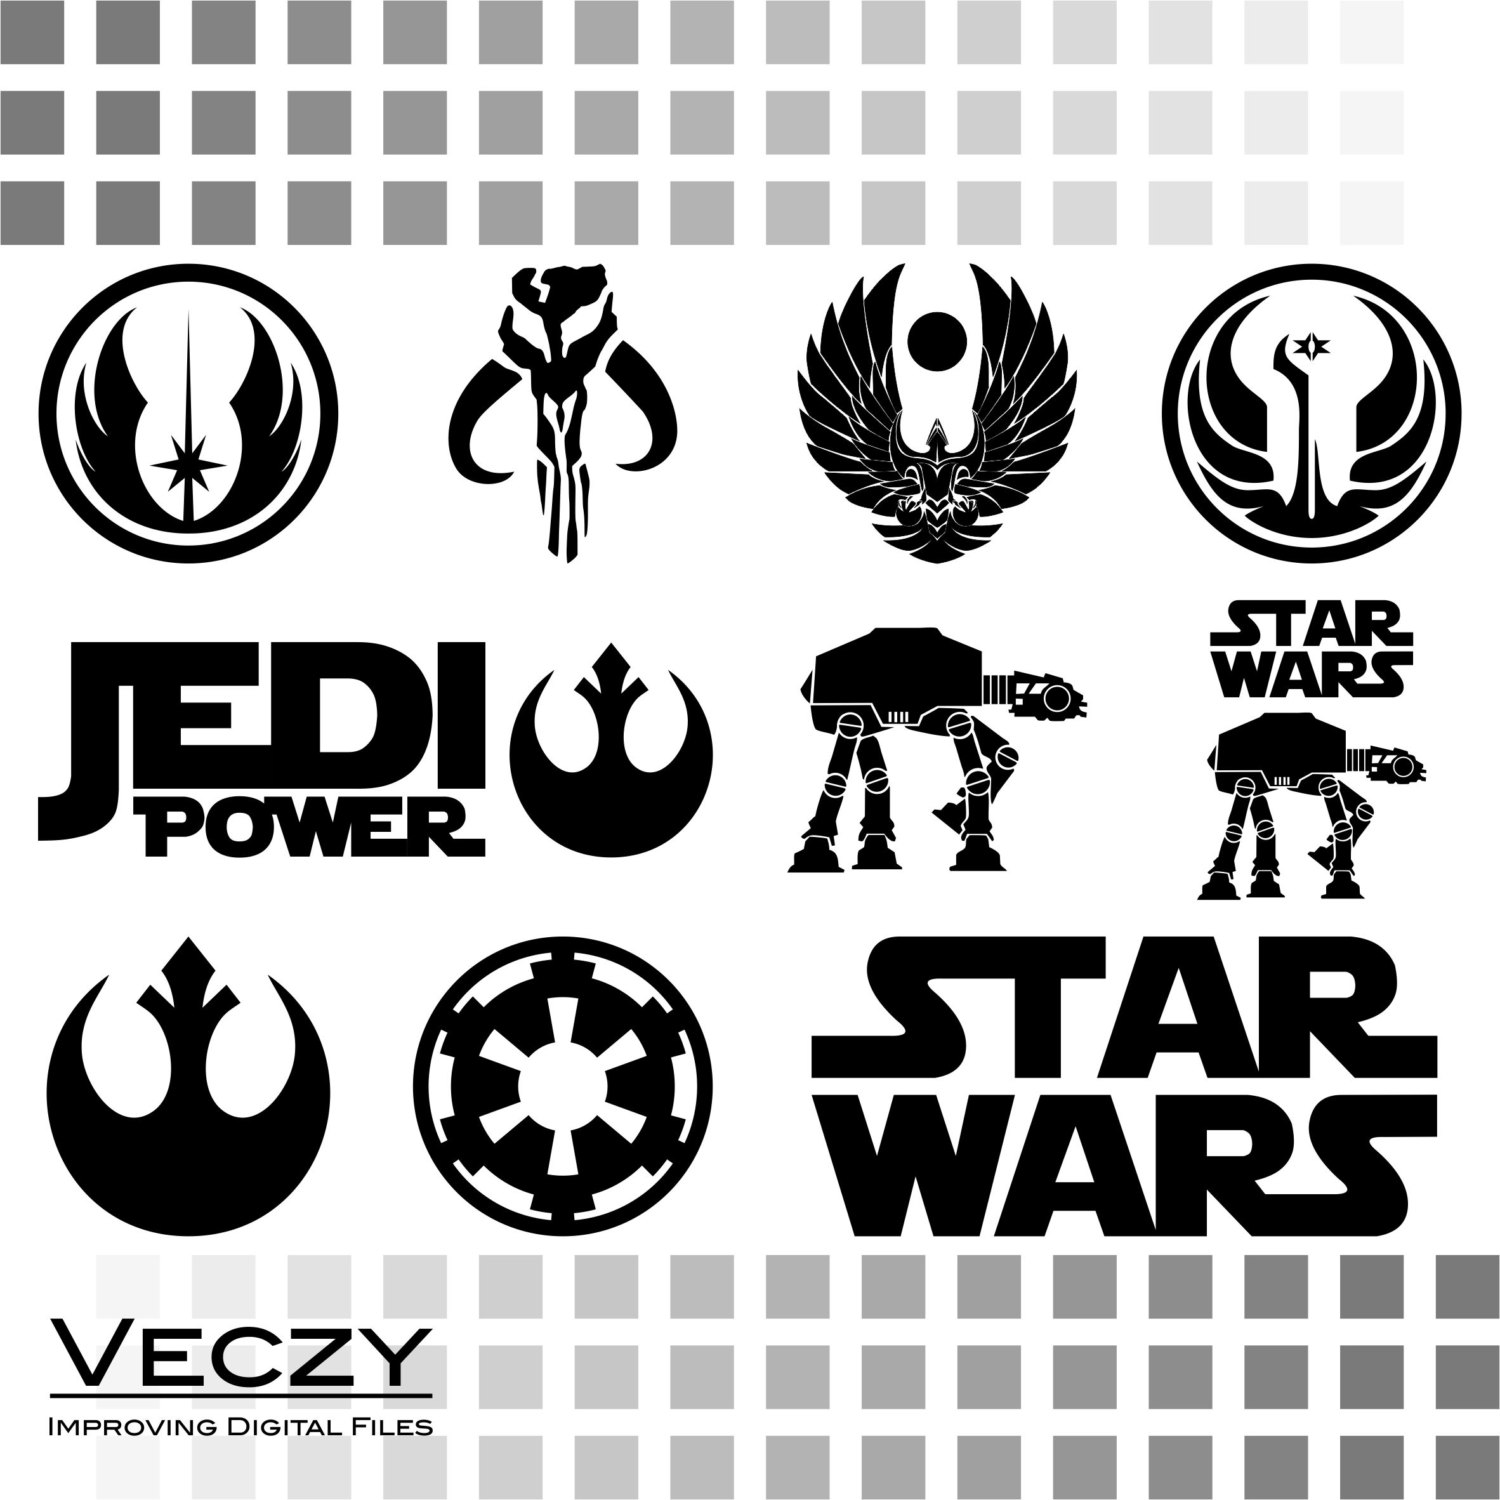 Star Wars clipart cricut For for files svg designs